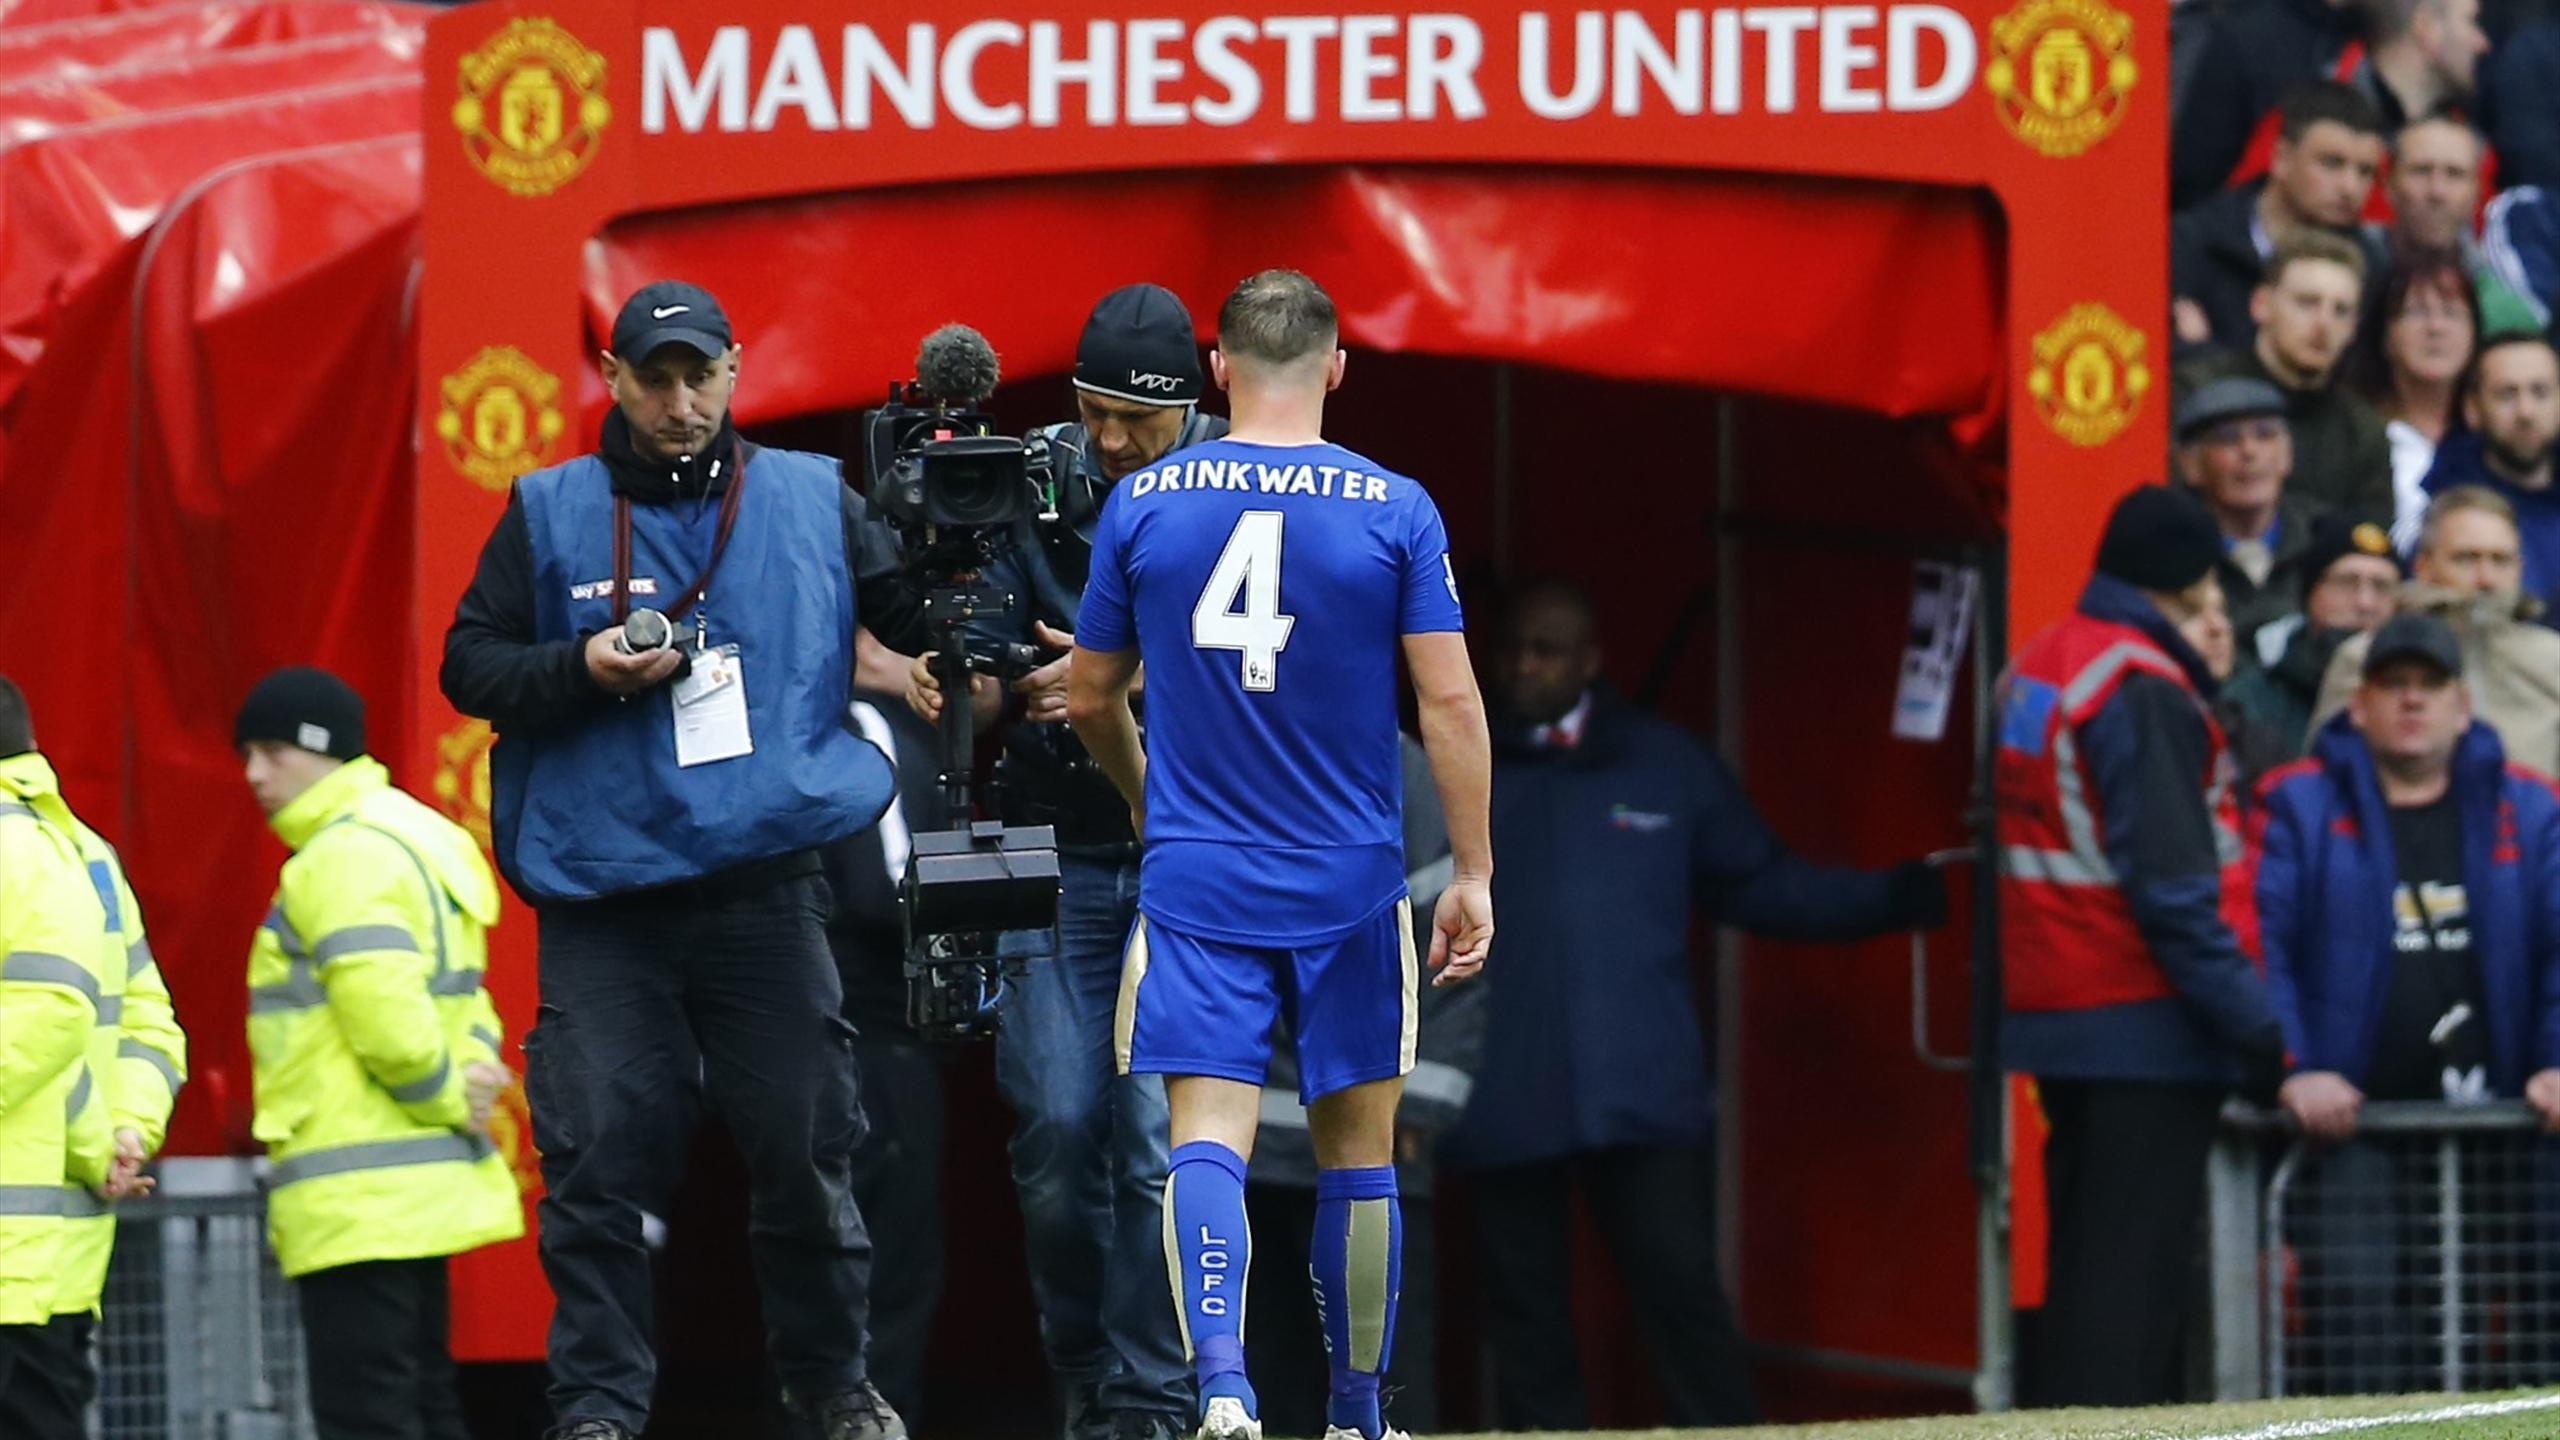 Leicester City's Danny Drinkwater looks dejected after being sent off